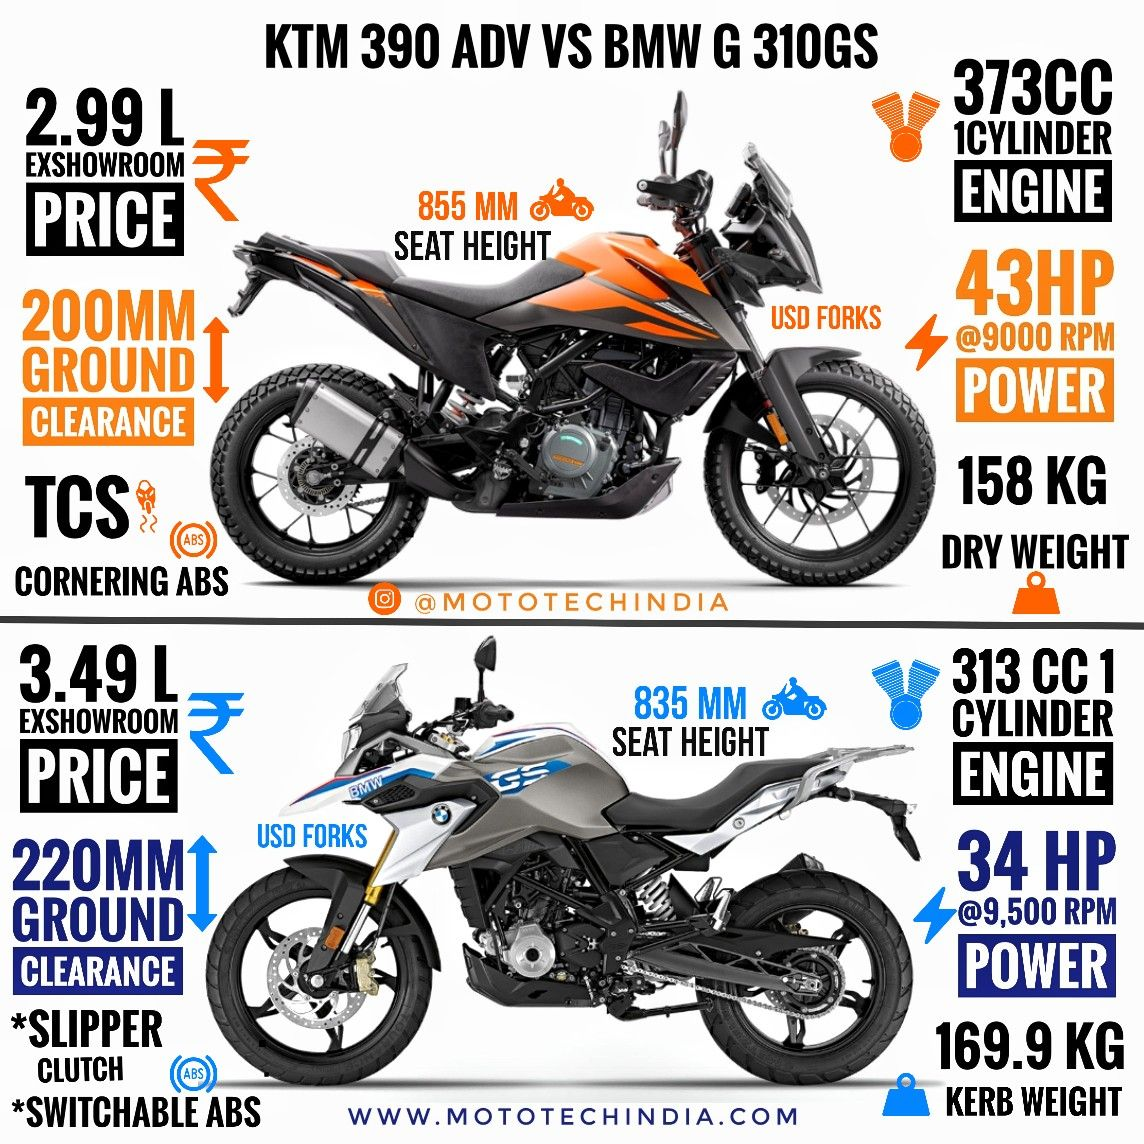 Ktm 390 Adventure Vs Bmw G 310gs Infographic Comparison A Key